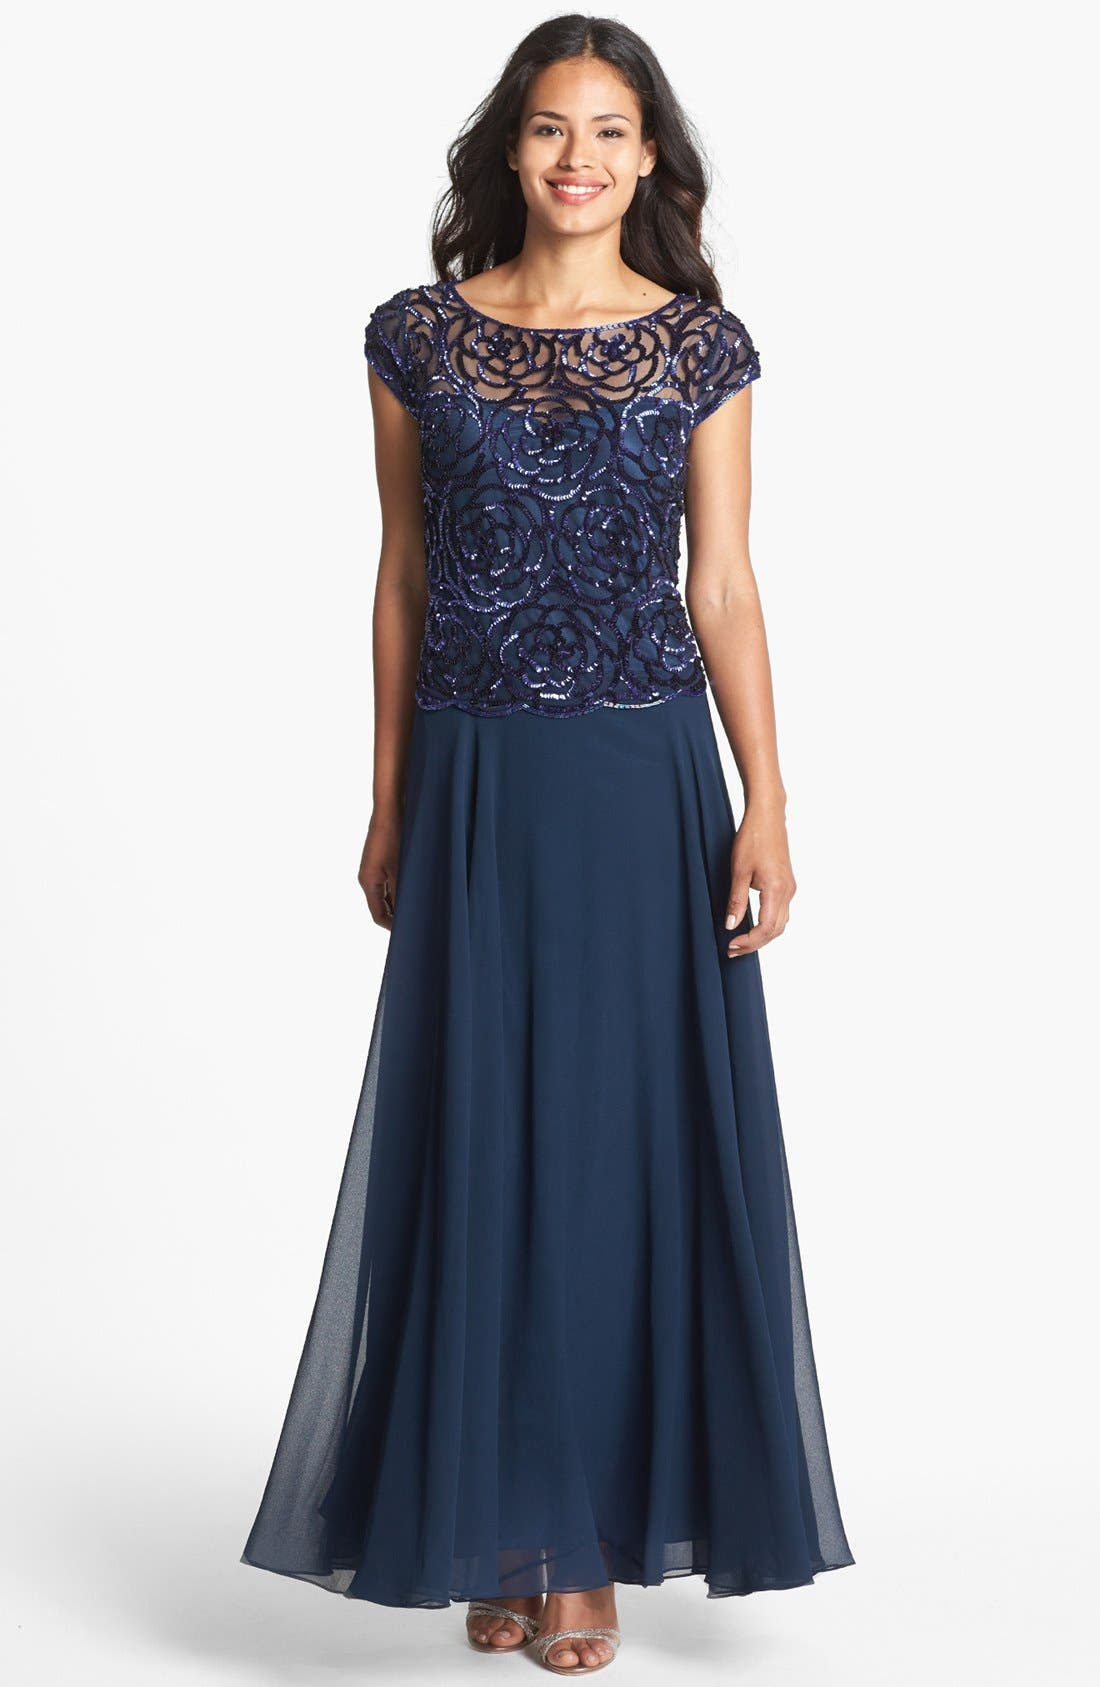 Alternate Image 1 Selected - J Kara Sequin Floral Cap Sleeve Gown